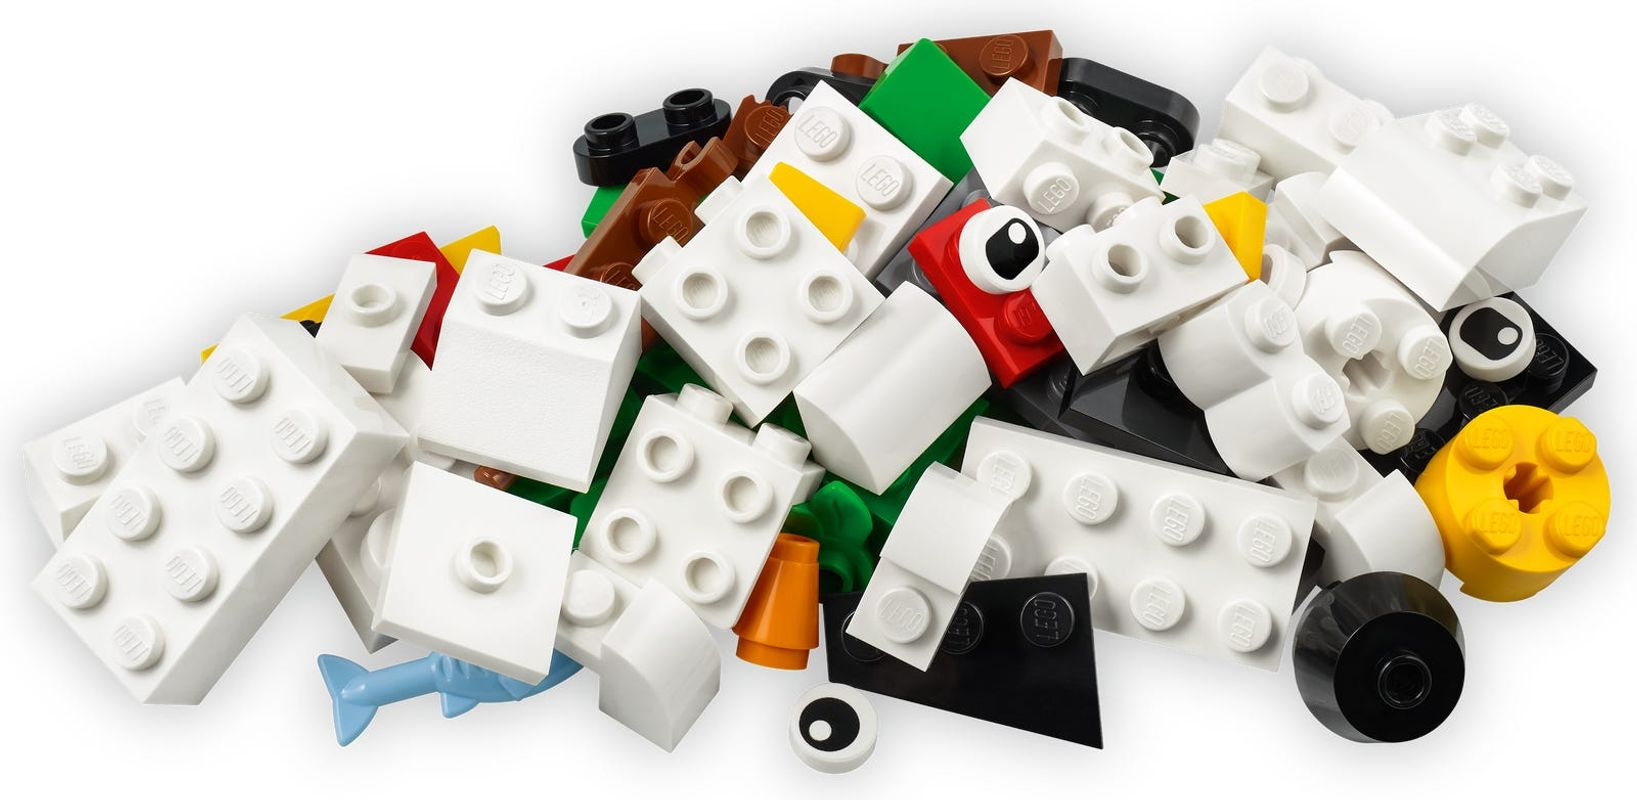 Creative White Bricks components